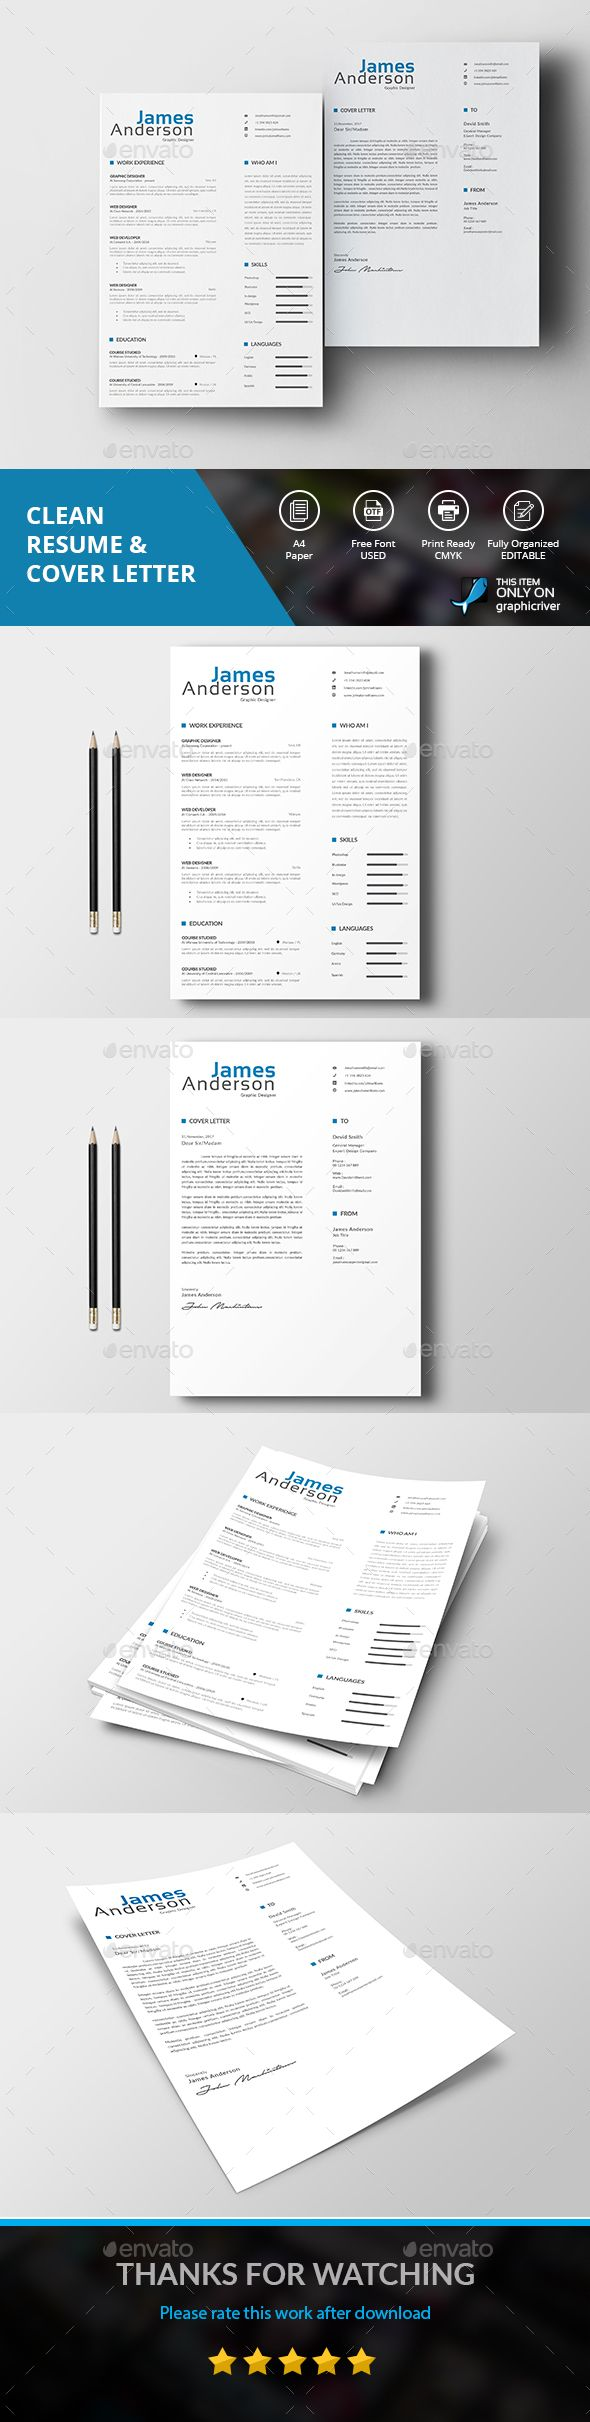 Resume u0026 Cover Letter 100 best CV